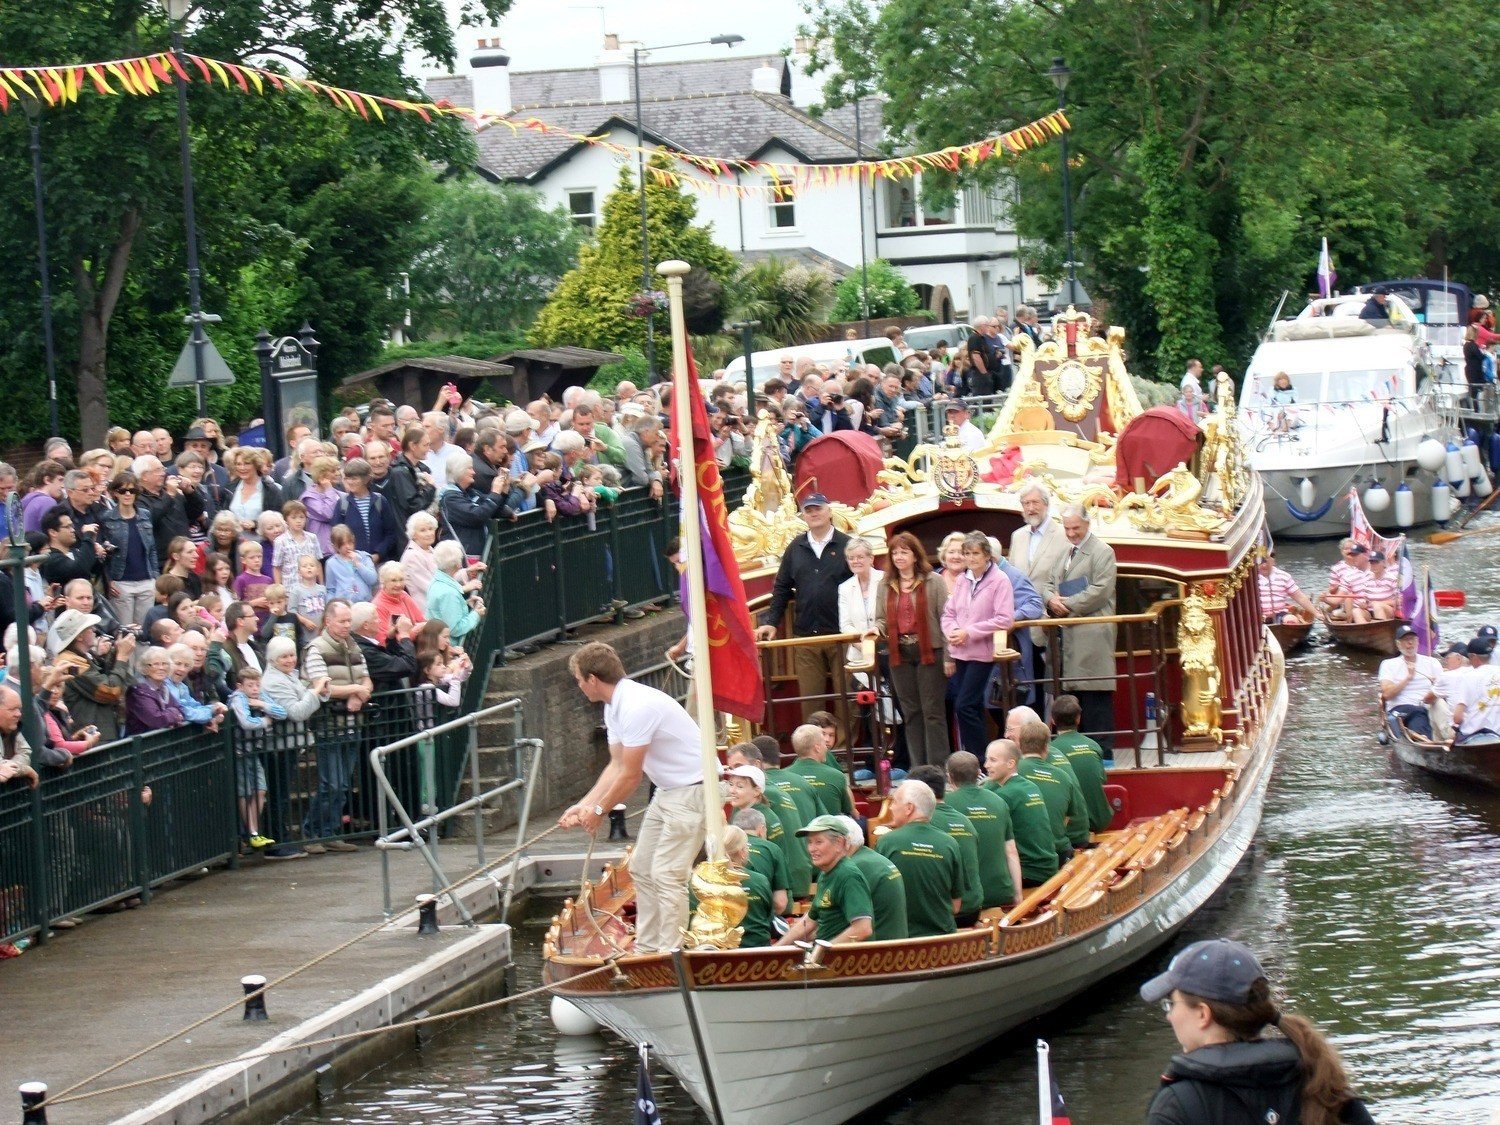 The packed bankside at Boulters Lock. Crowds viewing Gloriana